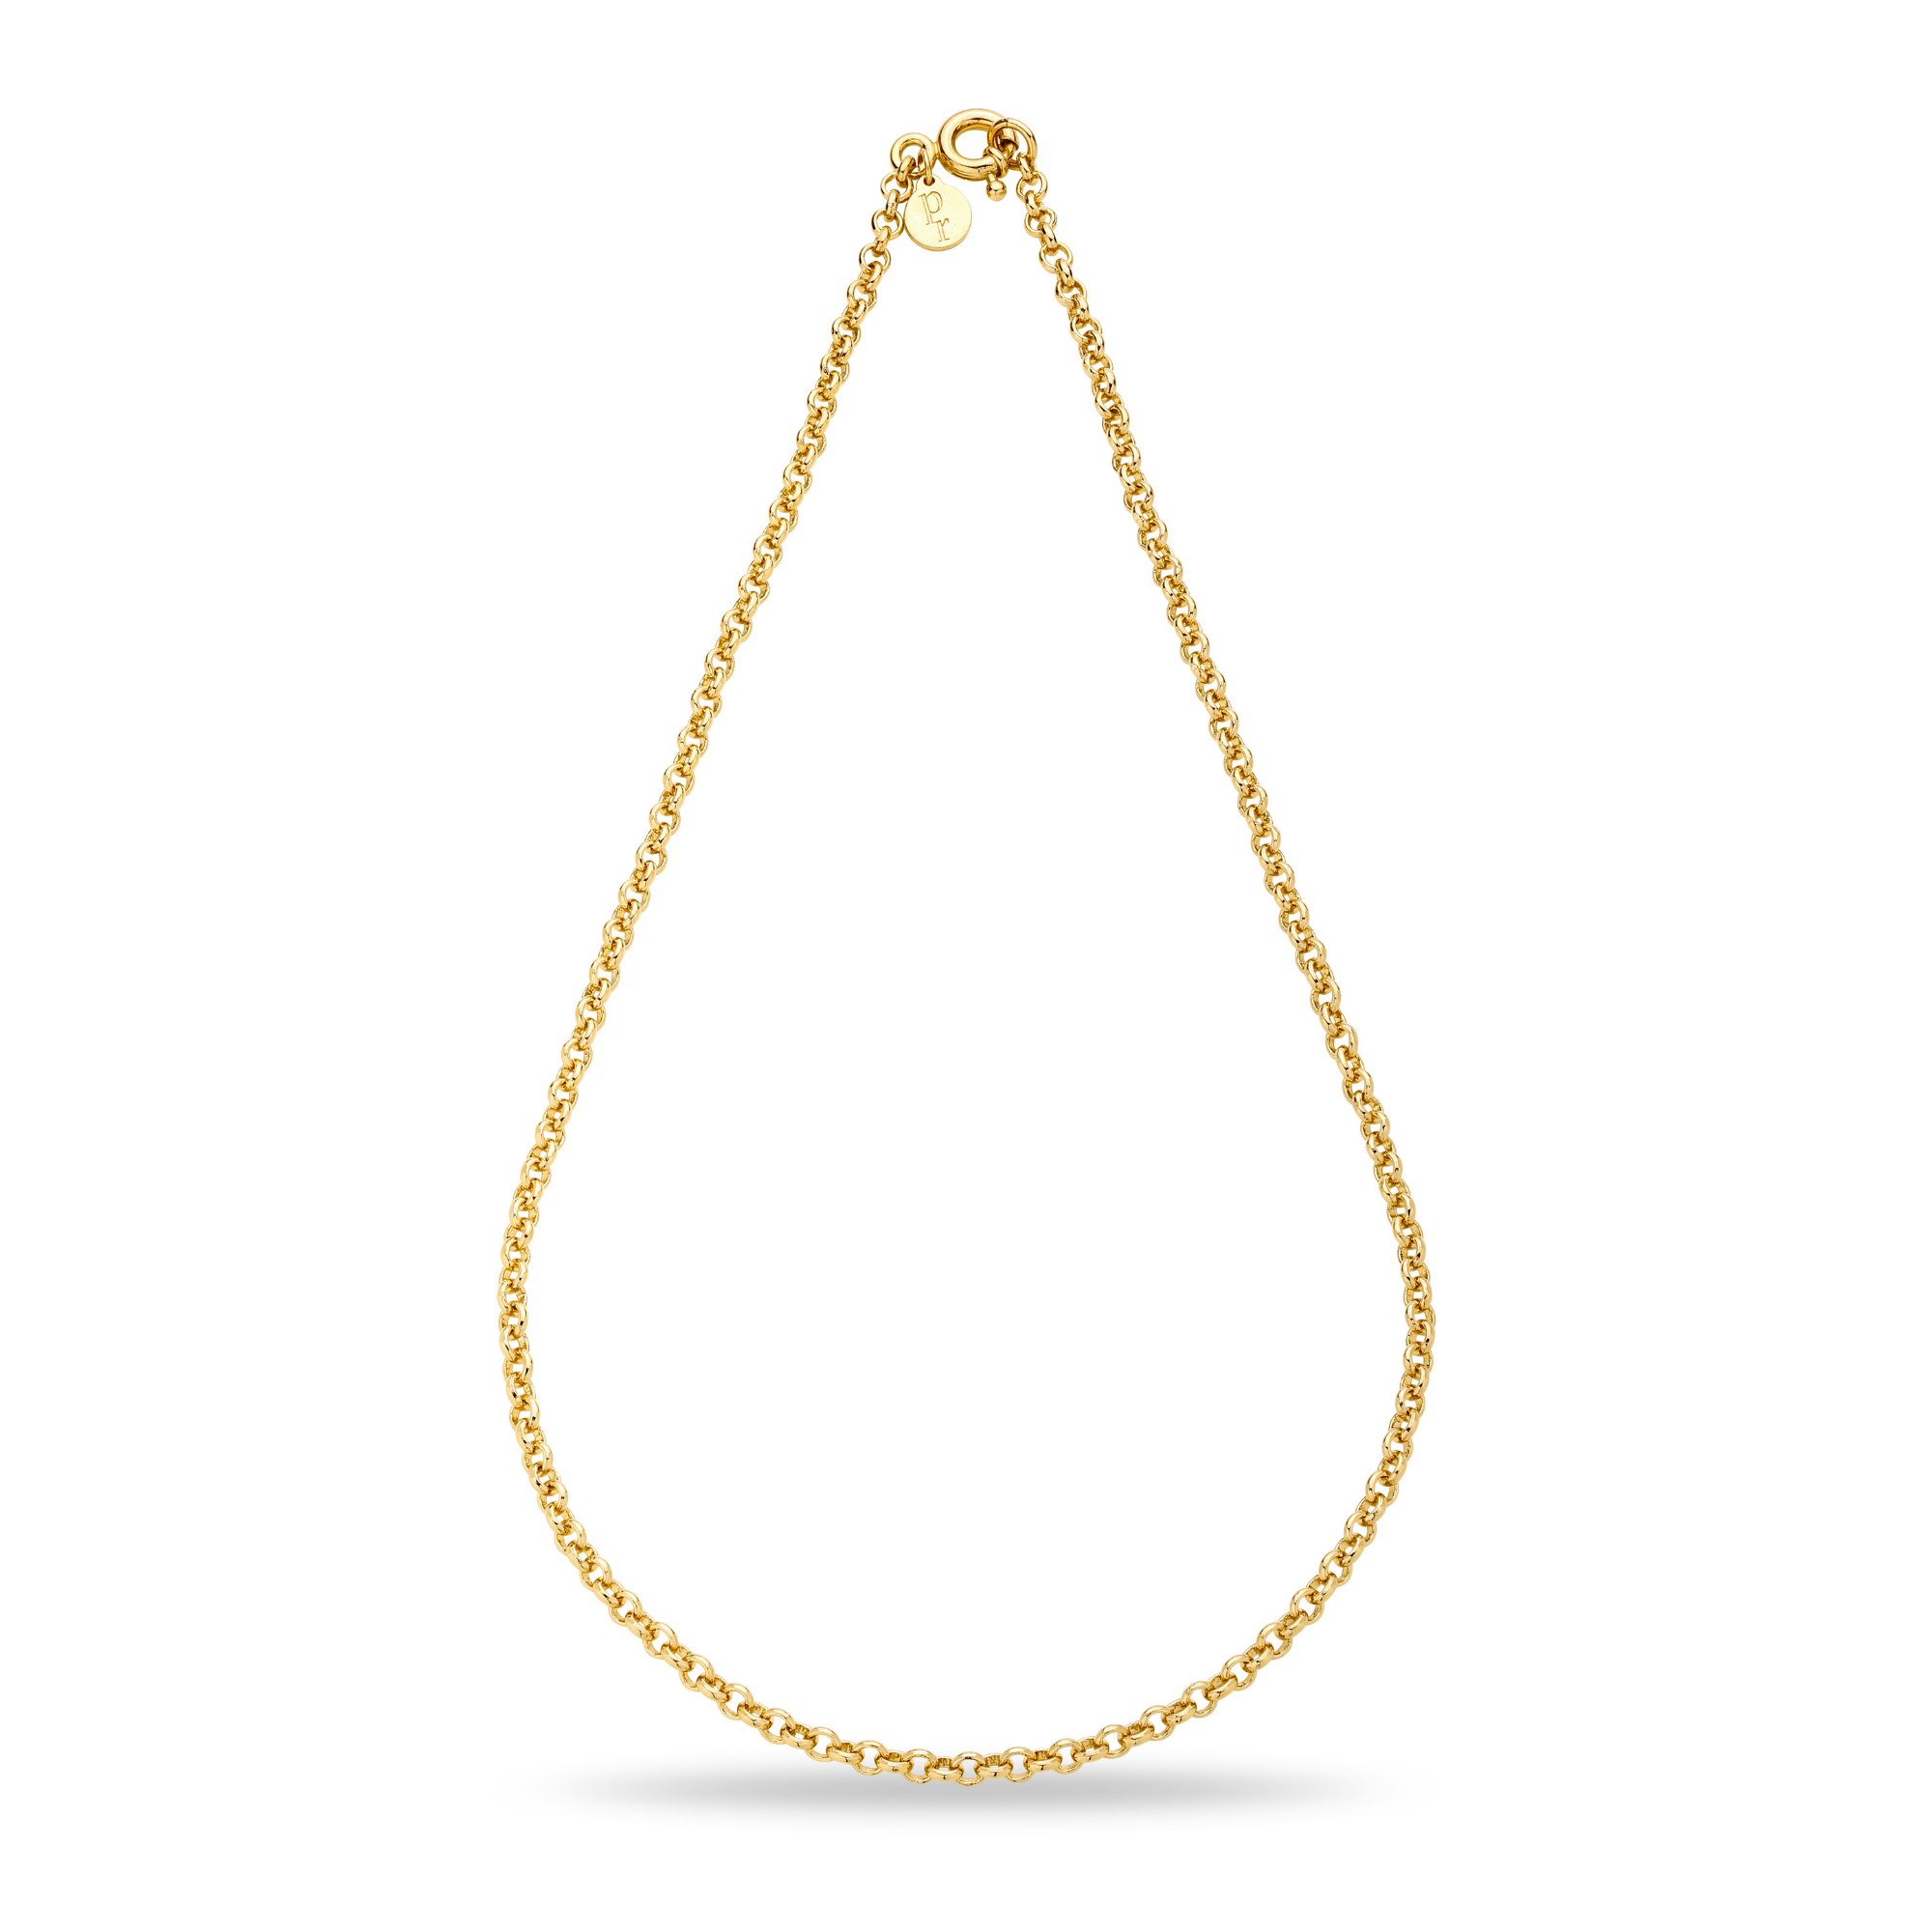 PATTY ROSE CHAIN No.9 NECKLACE mini